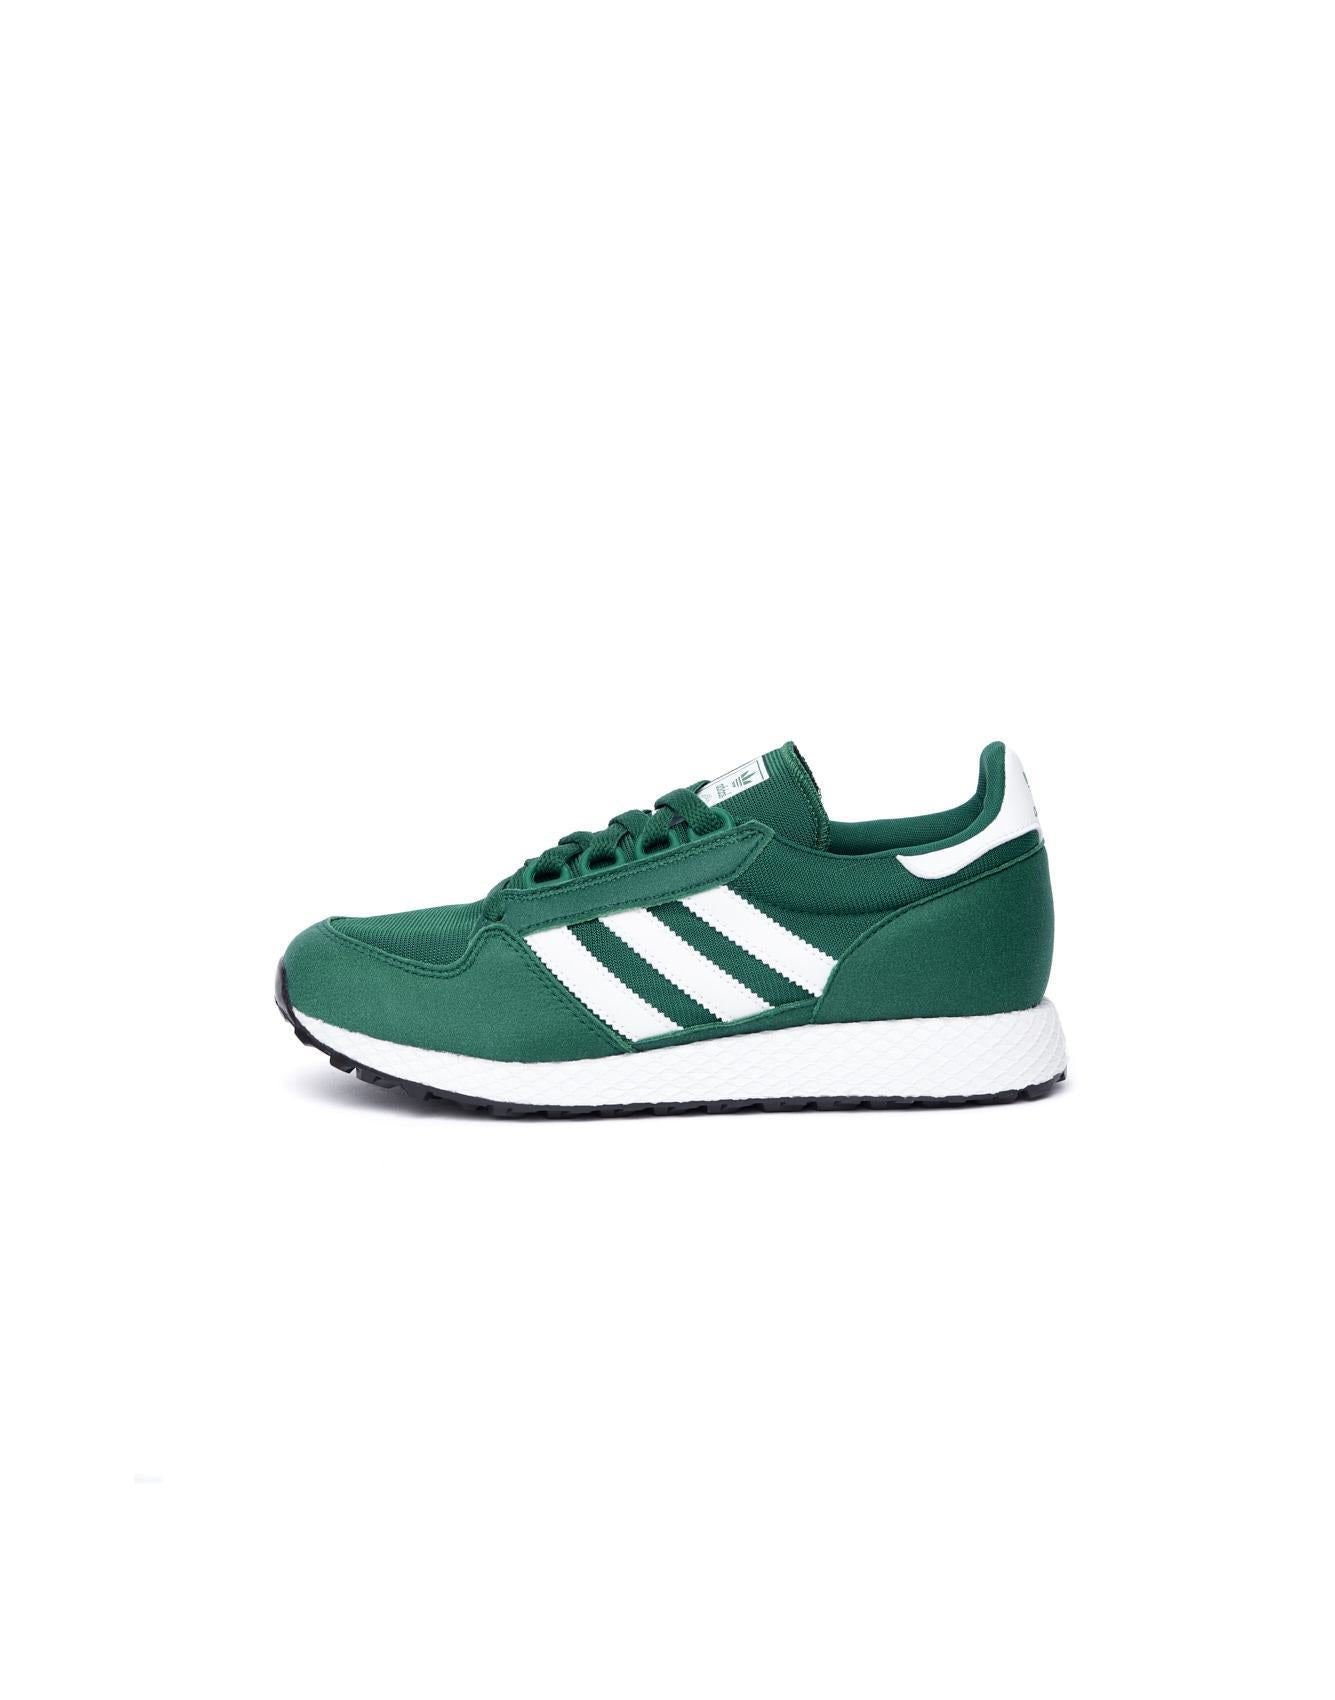 Adidas green Forest Grove suede and nylon shoes for kids available at  Bellerose 38389f82a